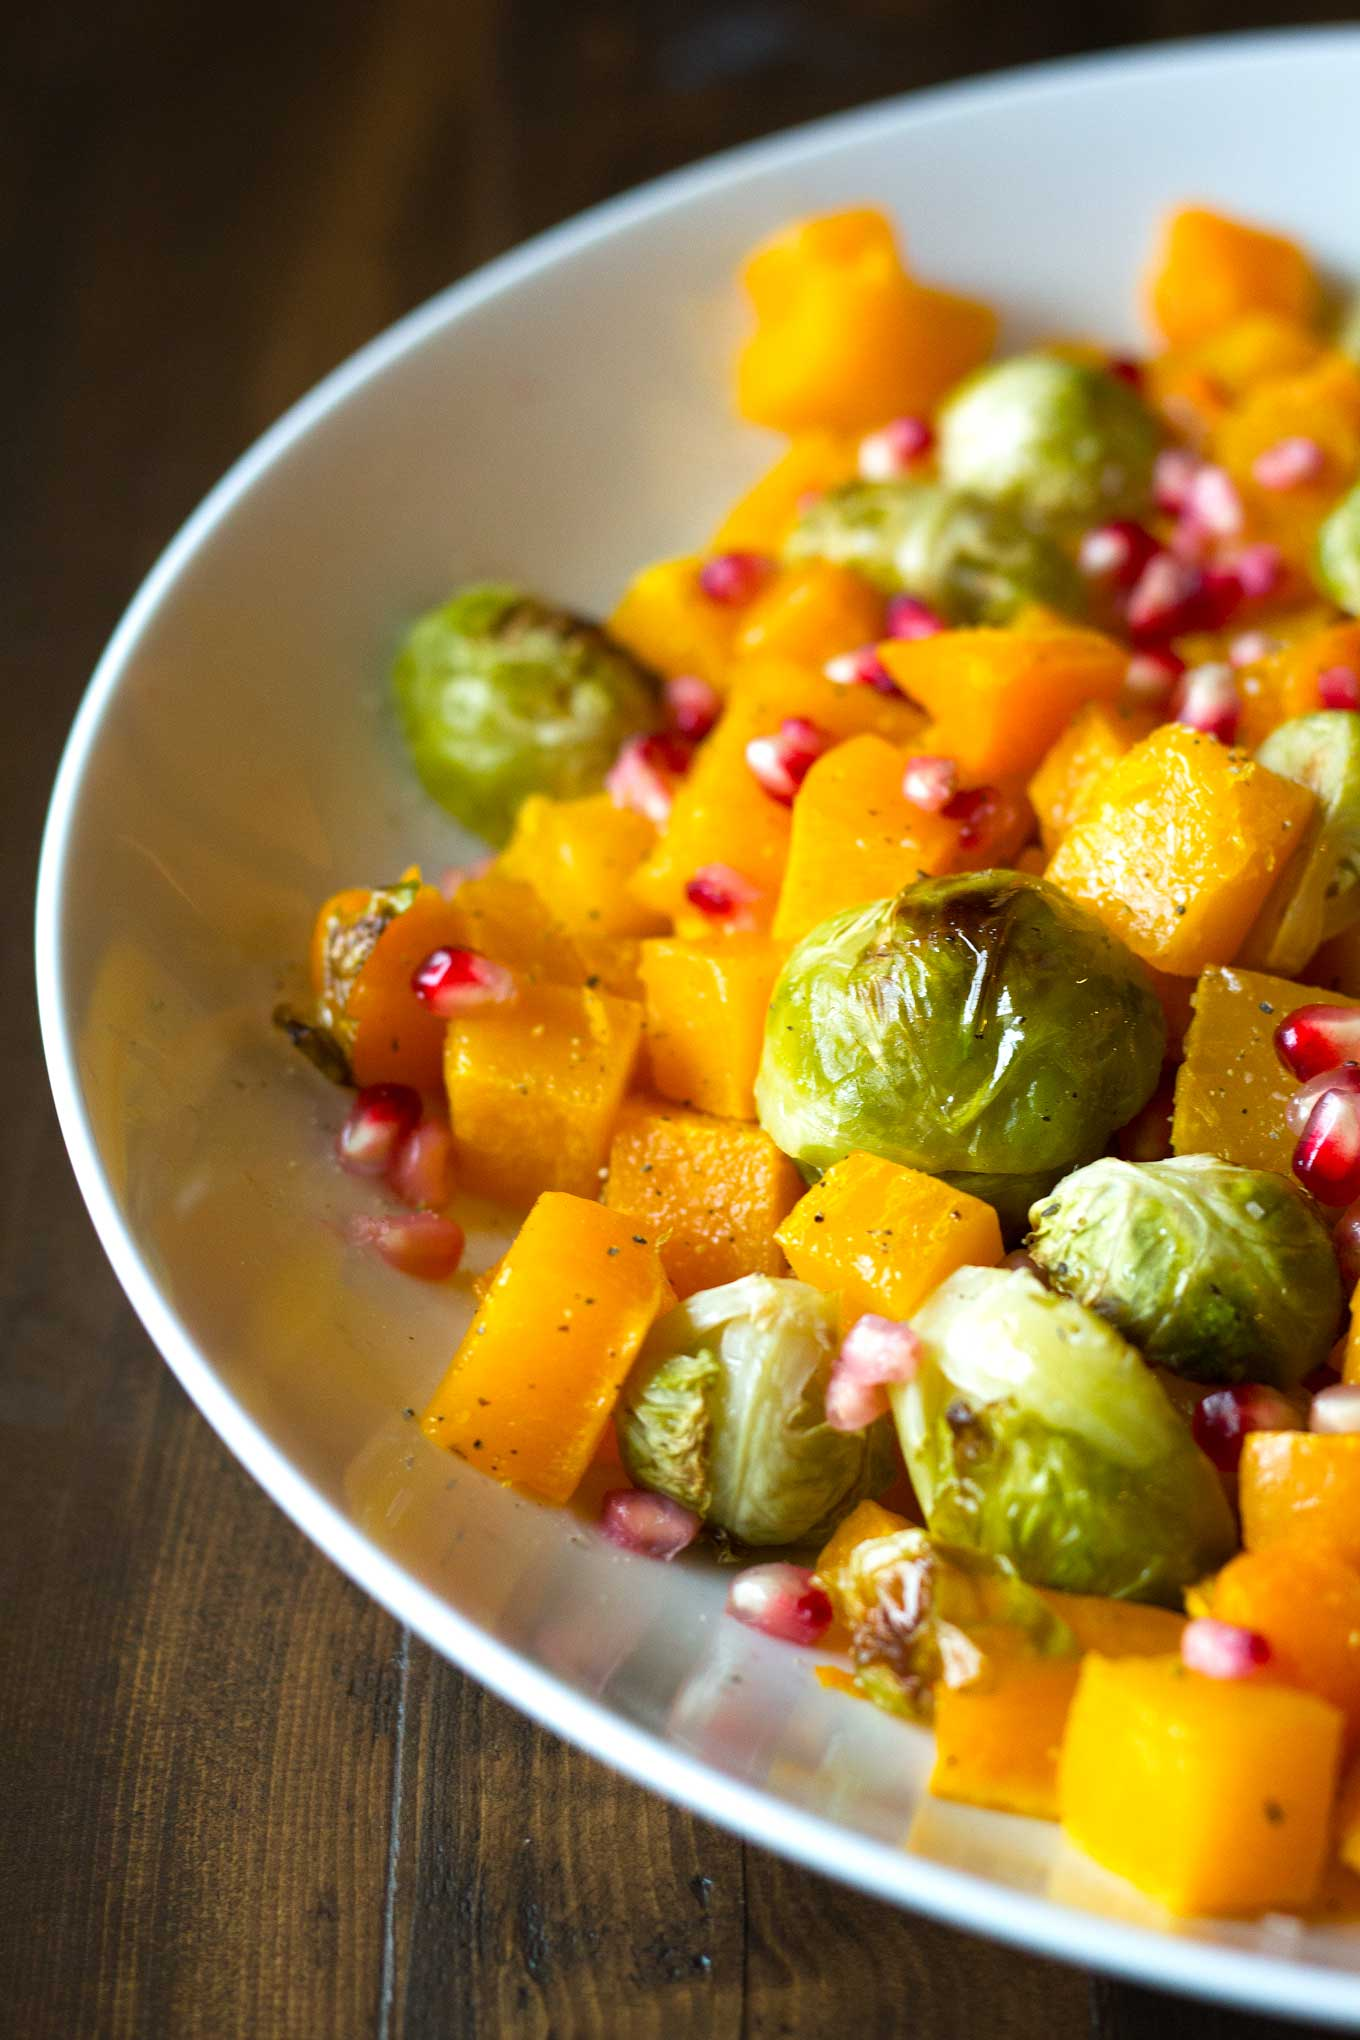 Fall Roasted Vegetables | Roasted butternut squash, brussels sprouts, sprinkled with pomegranate arils | Easy Vegan Side Dish | http://eatwithinyourmeans.com